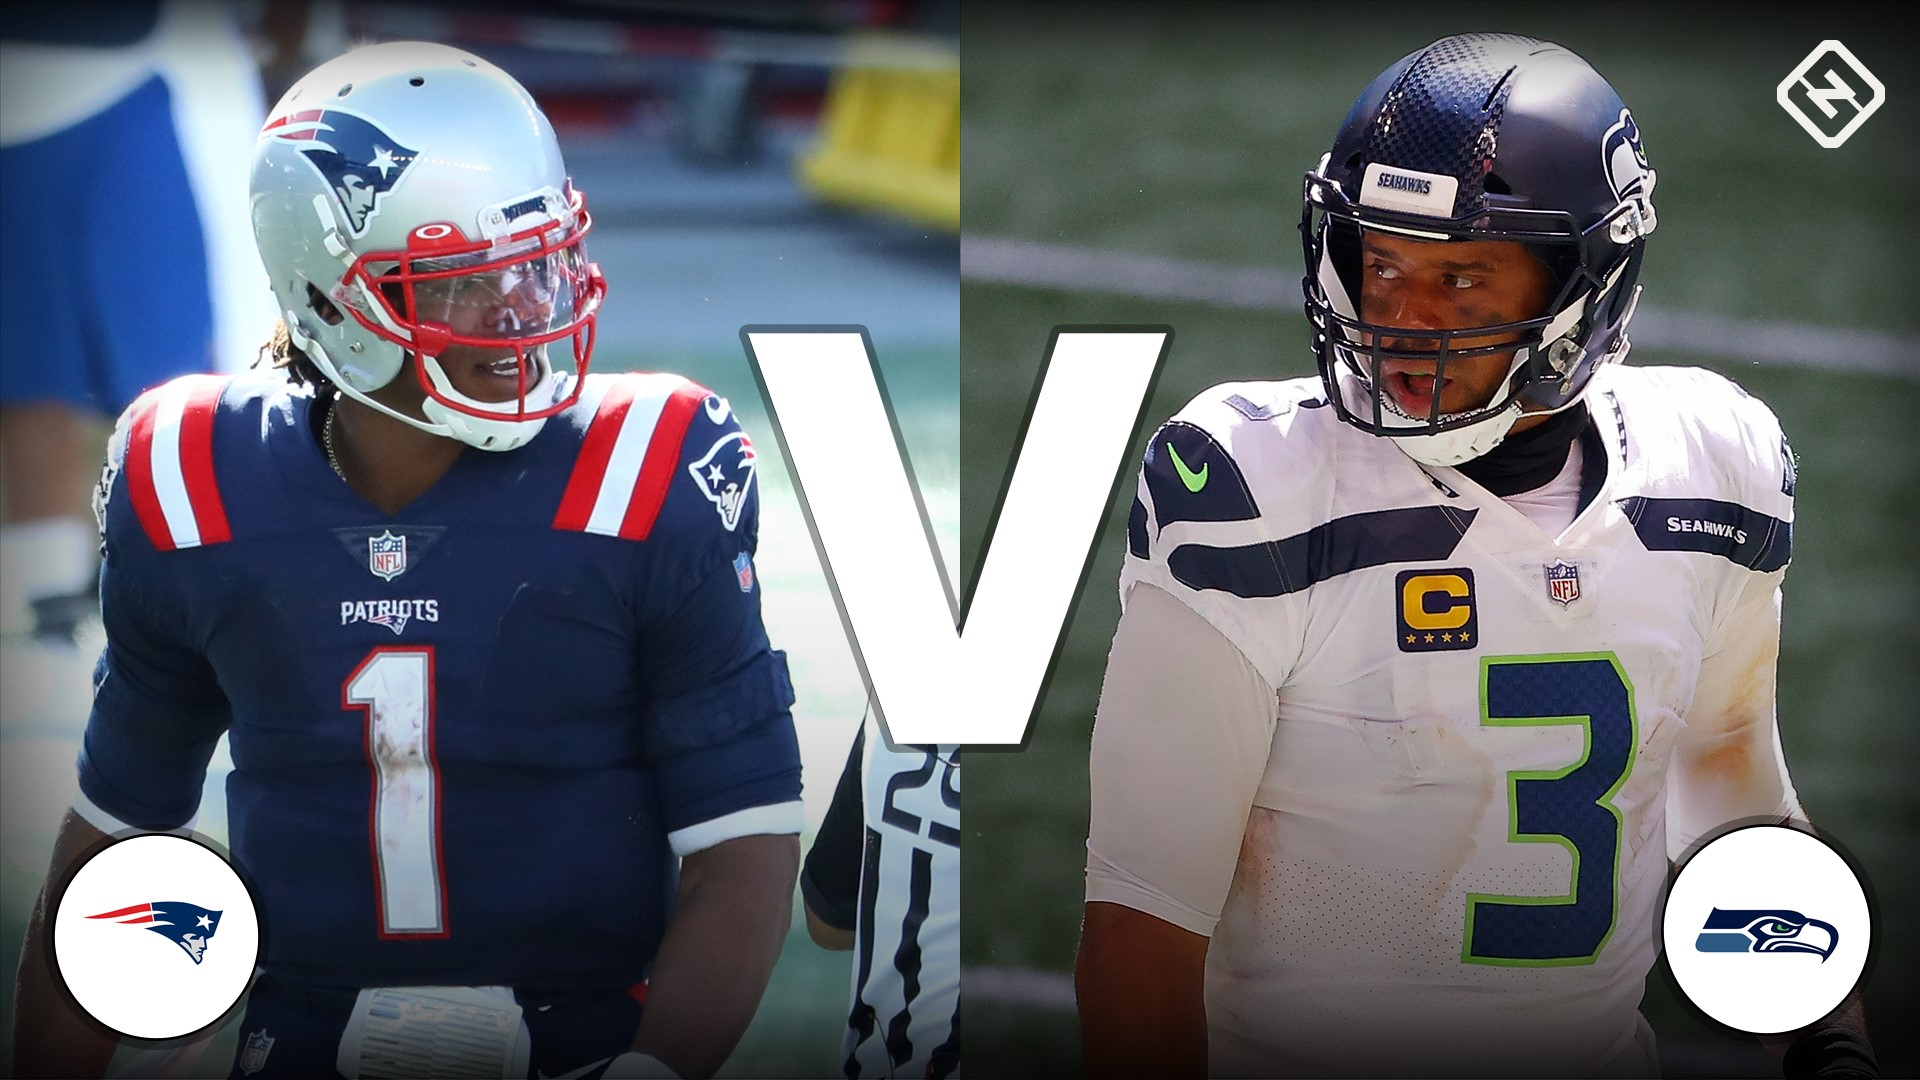 Patriots vs. Seahawks odds, prediction, betting trends for NFL's 'Sunday  Night Football' game | Sporting News